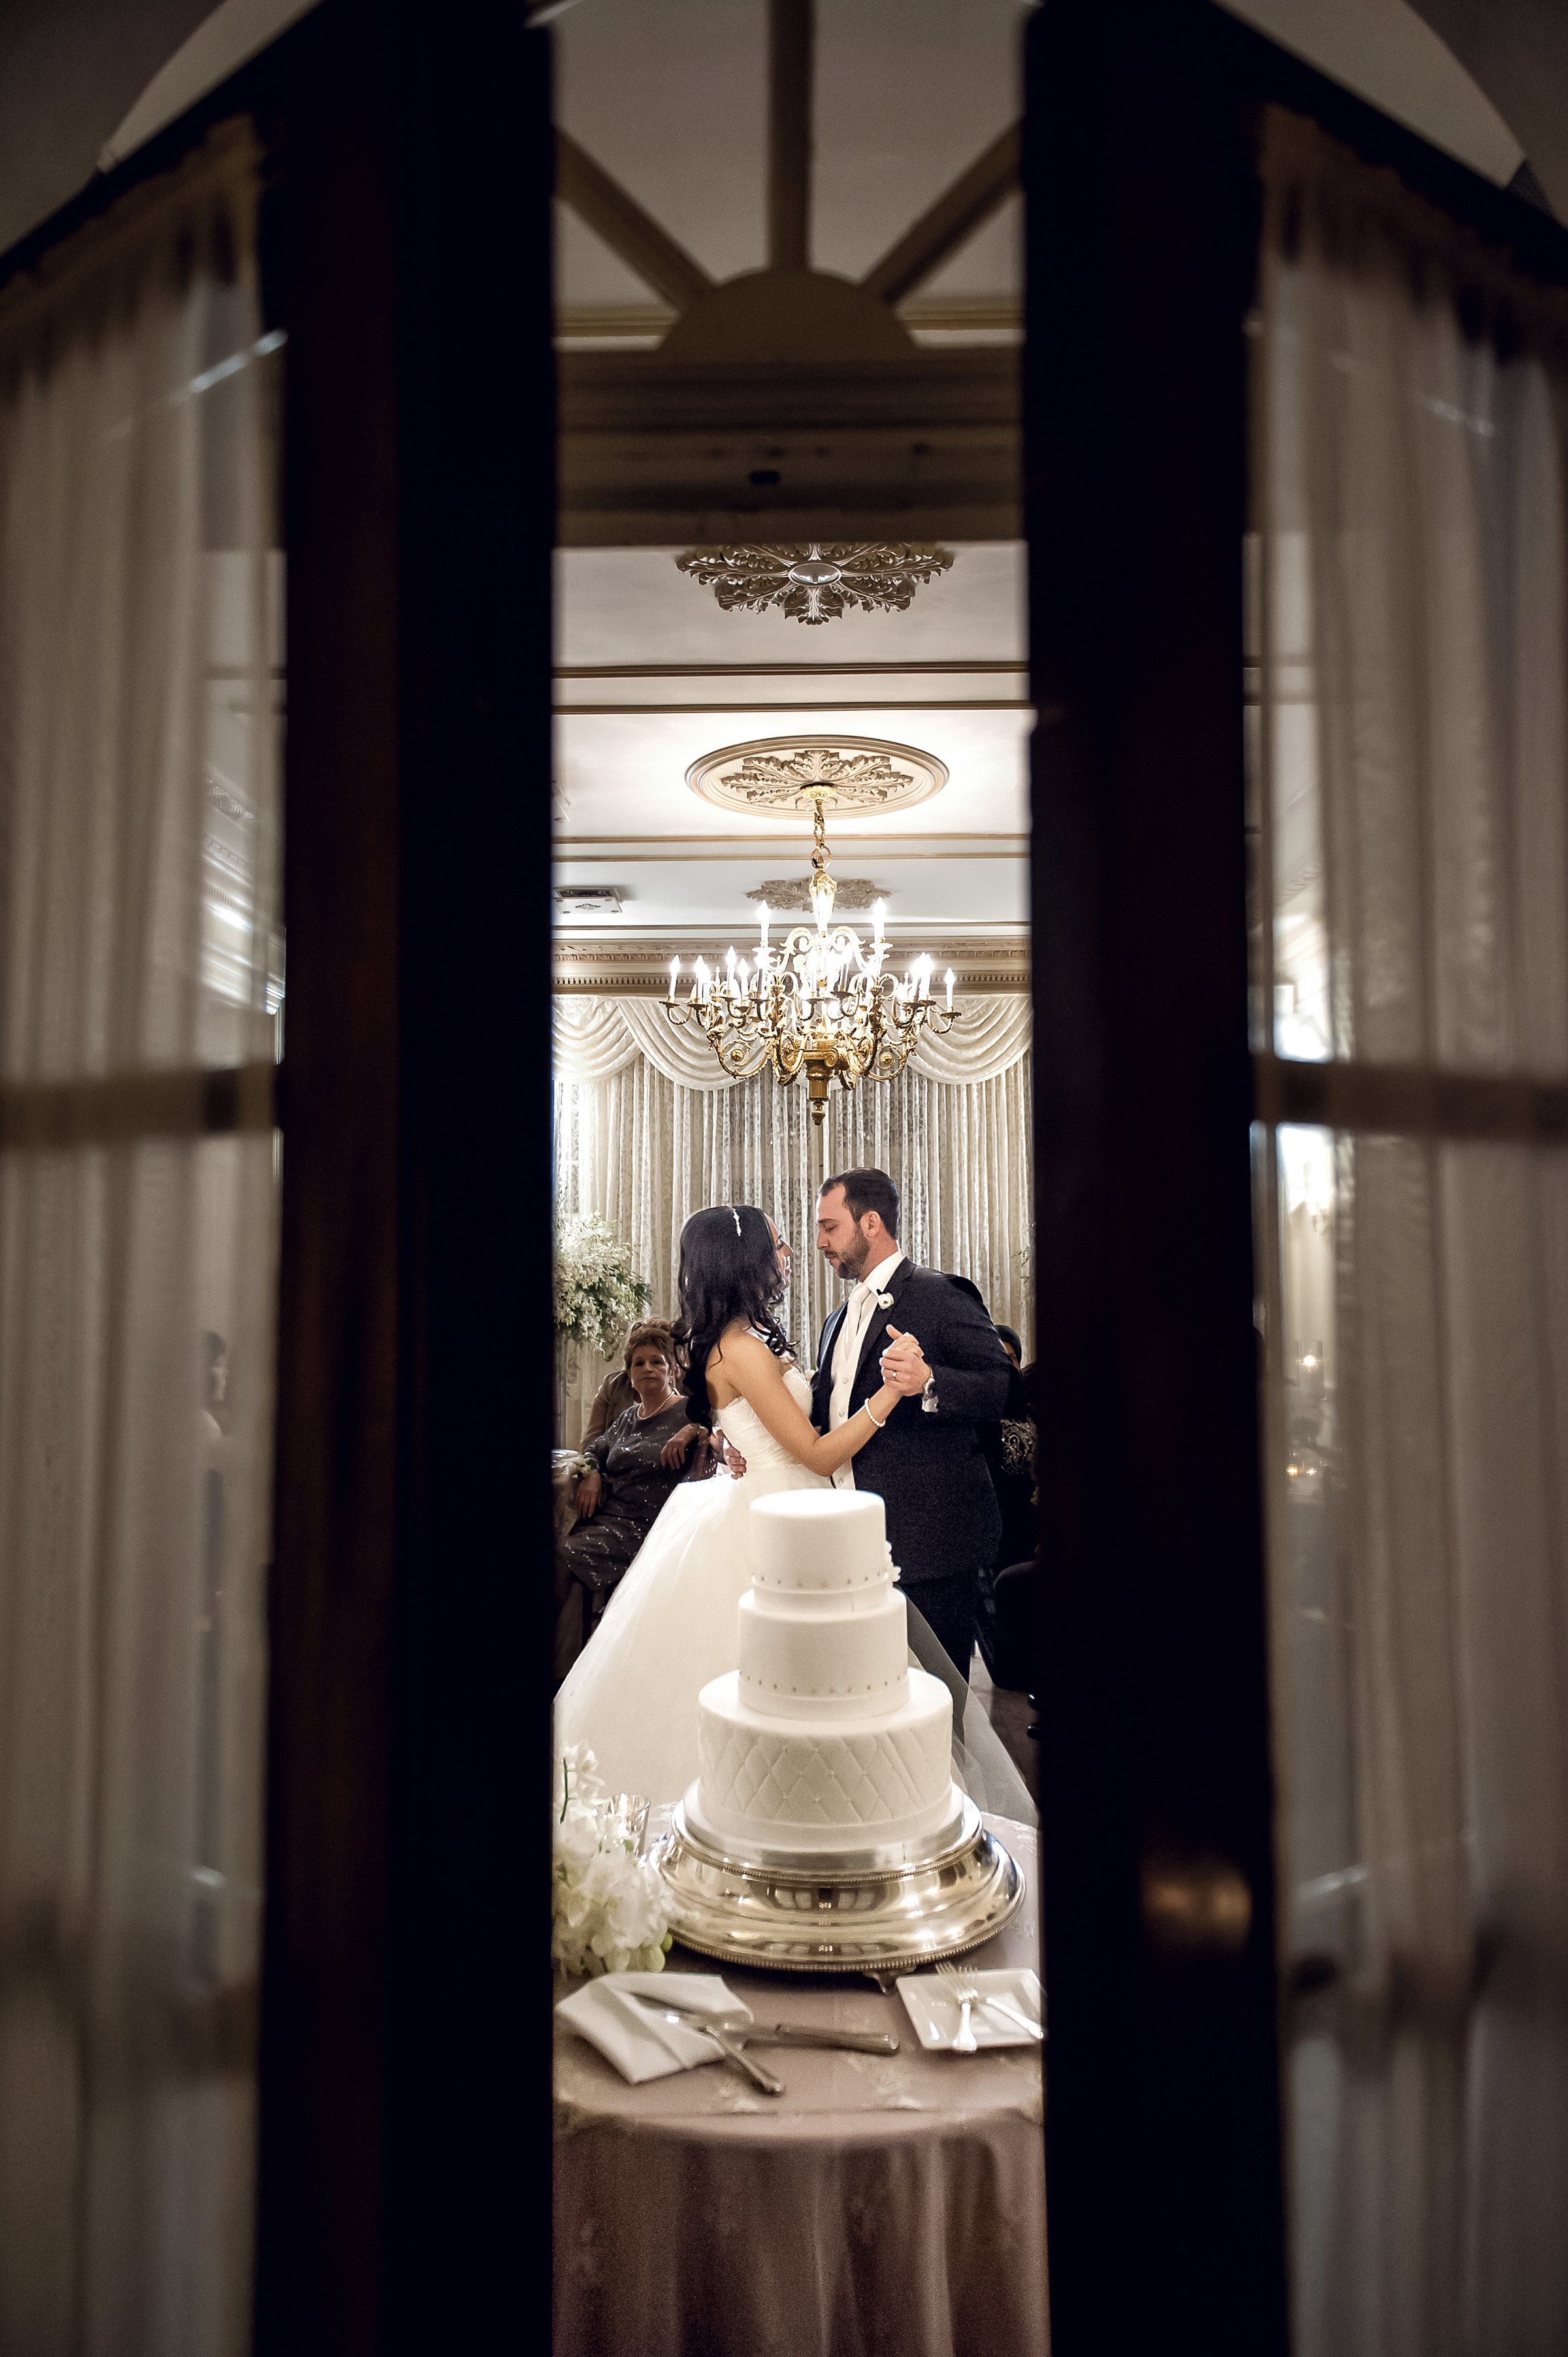 Graydon Hall couple dancing beyond curtain doors with cake in view - photo by David & Sherry Photography